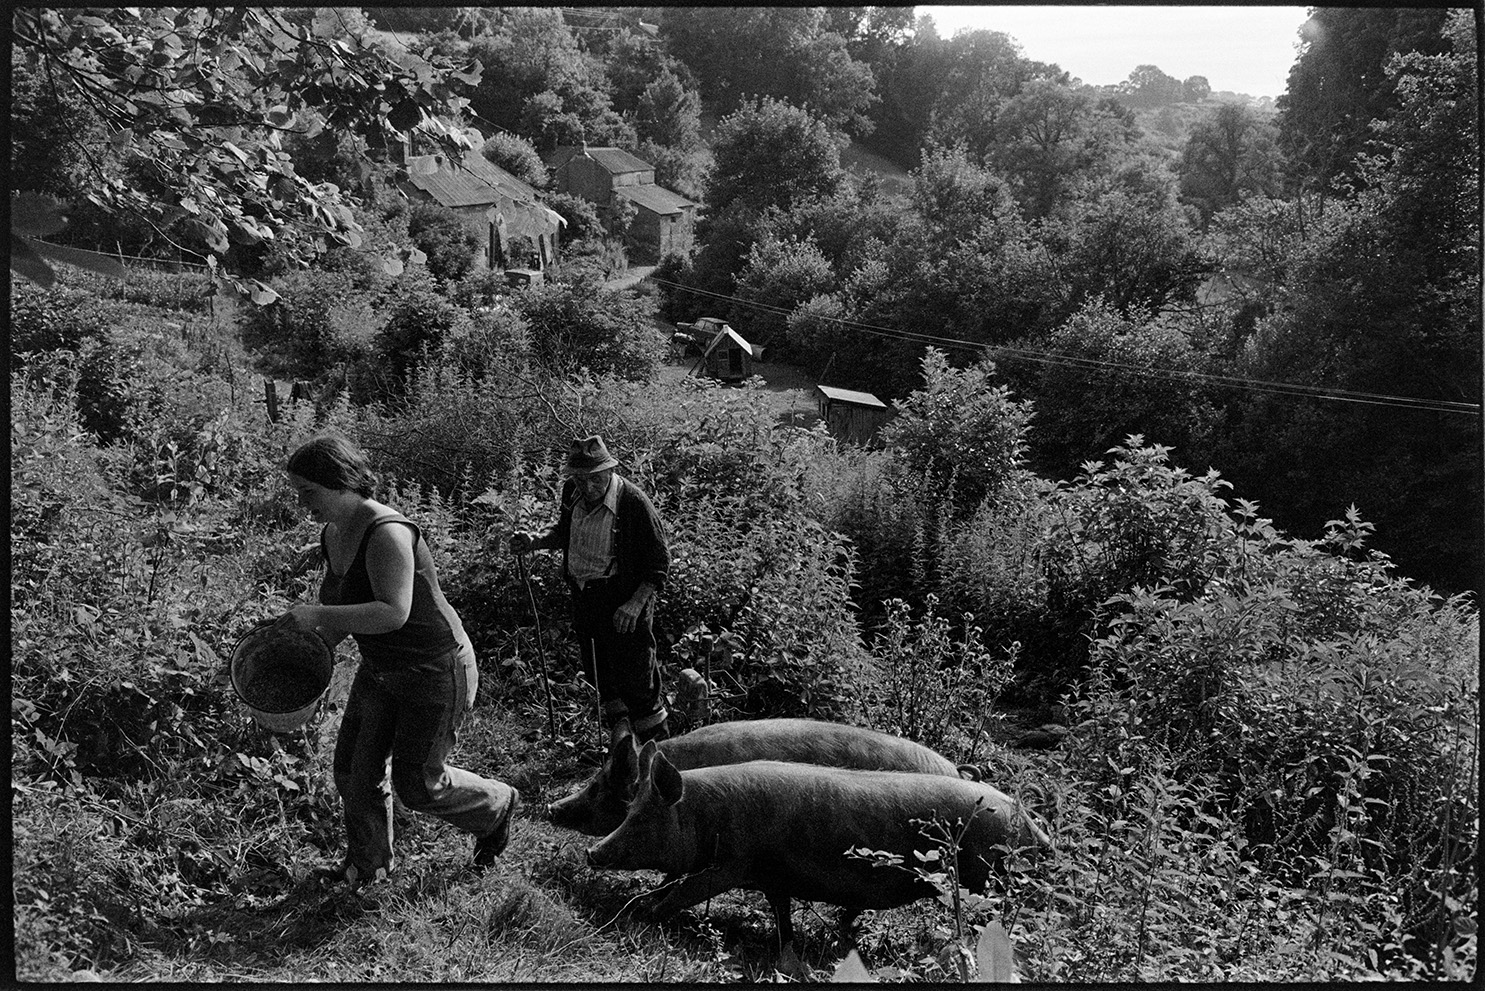 Farming practices and livestock, Feeding pigs - Fran Pickard & Archie Parkhouse Dolton, Millhams, August 1978.